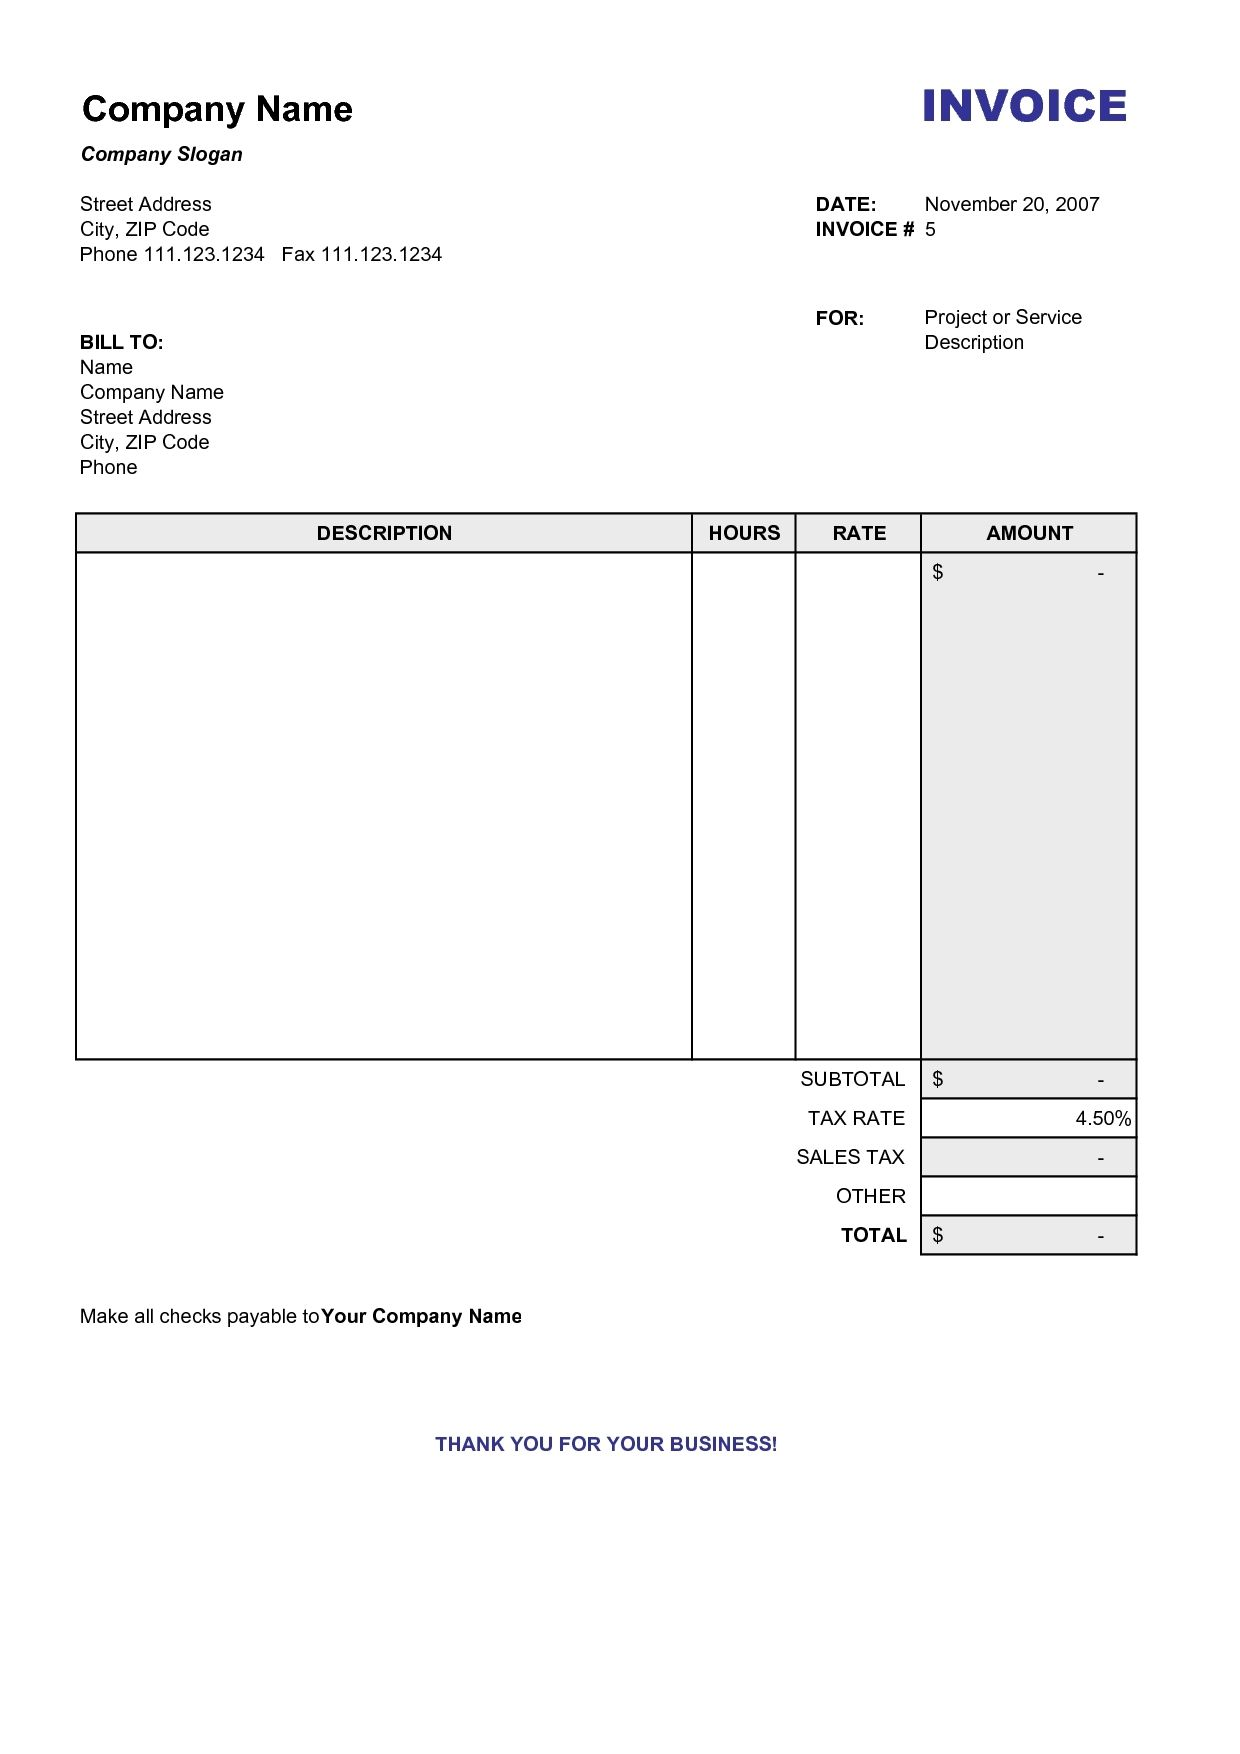 Copy Of A Blank Invoice Invoice Template Free Copy Of Blank - Free download invoices for service business